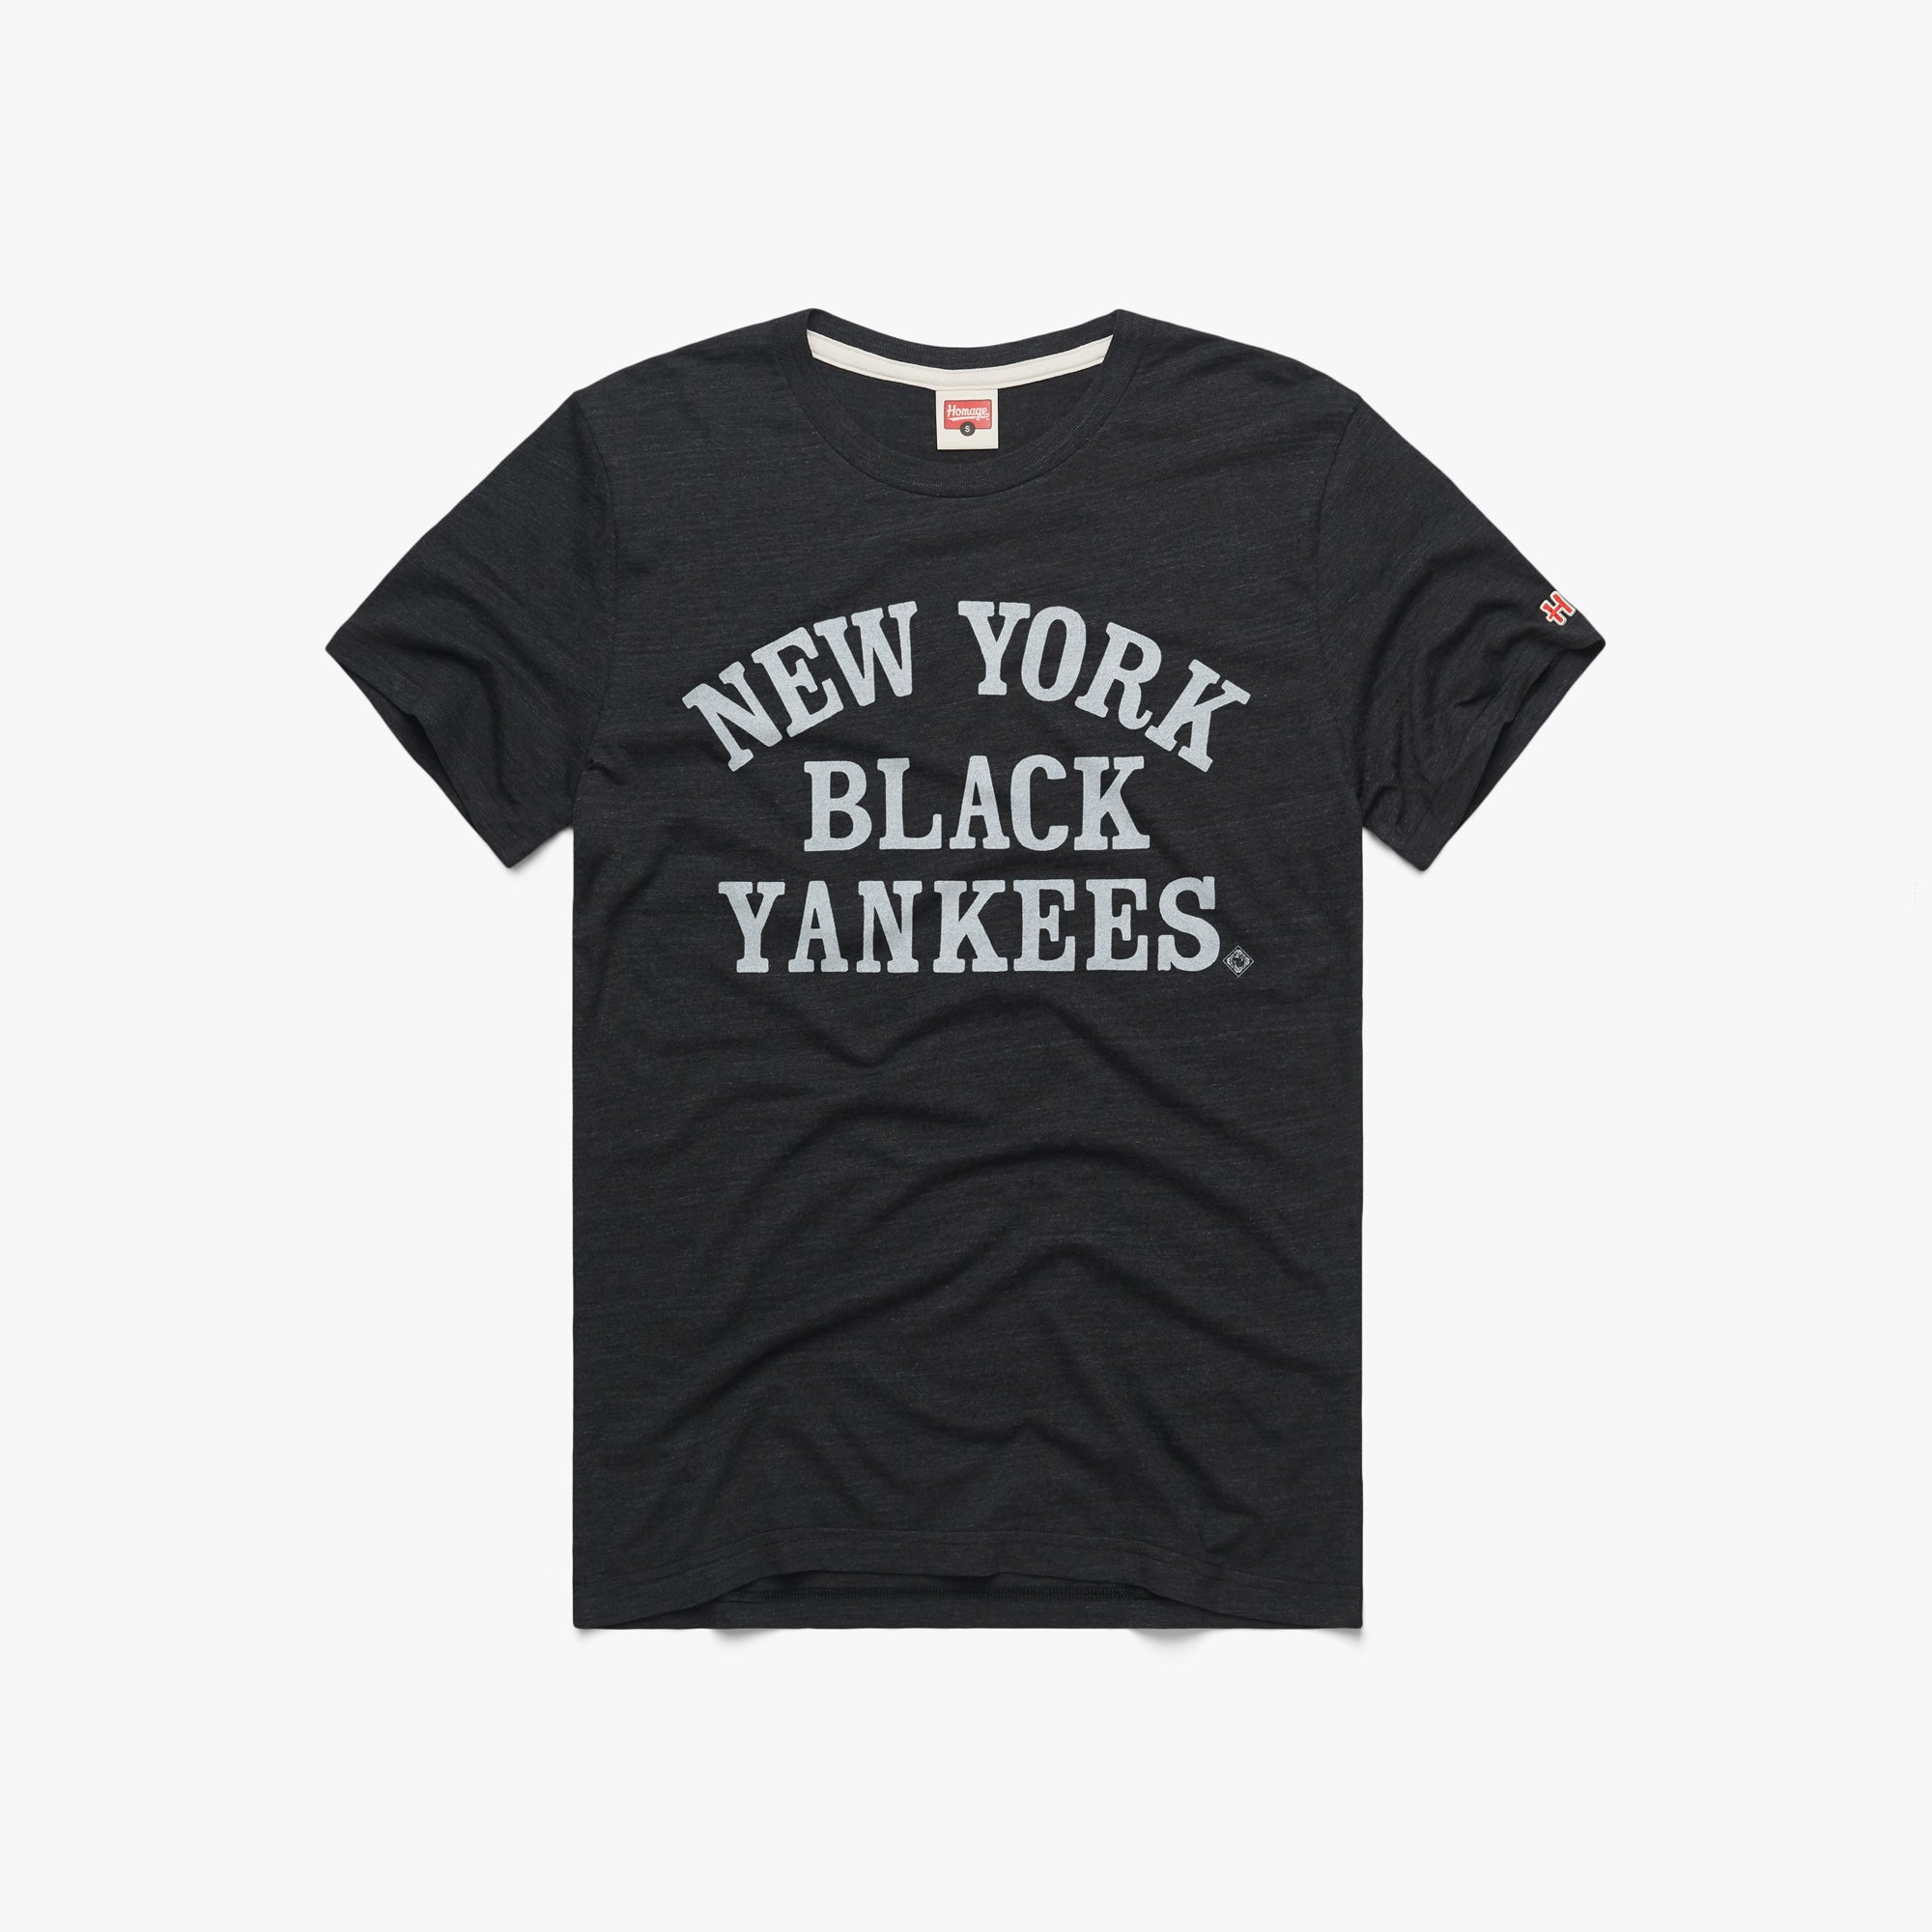 New York Black Yankees